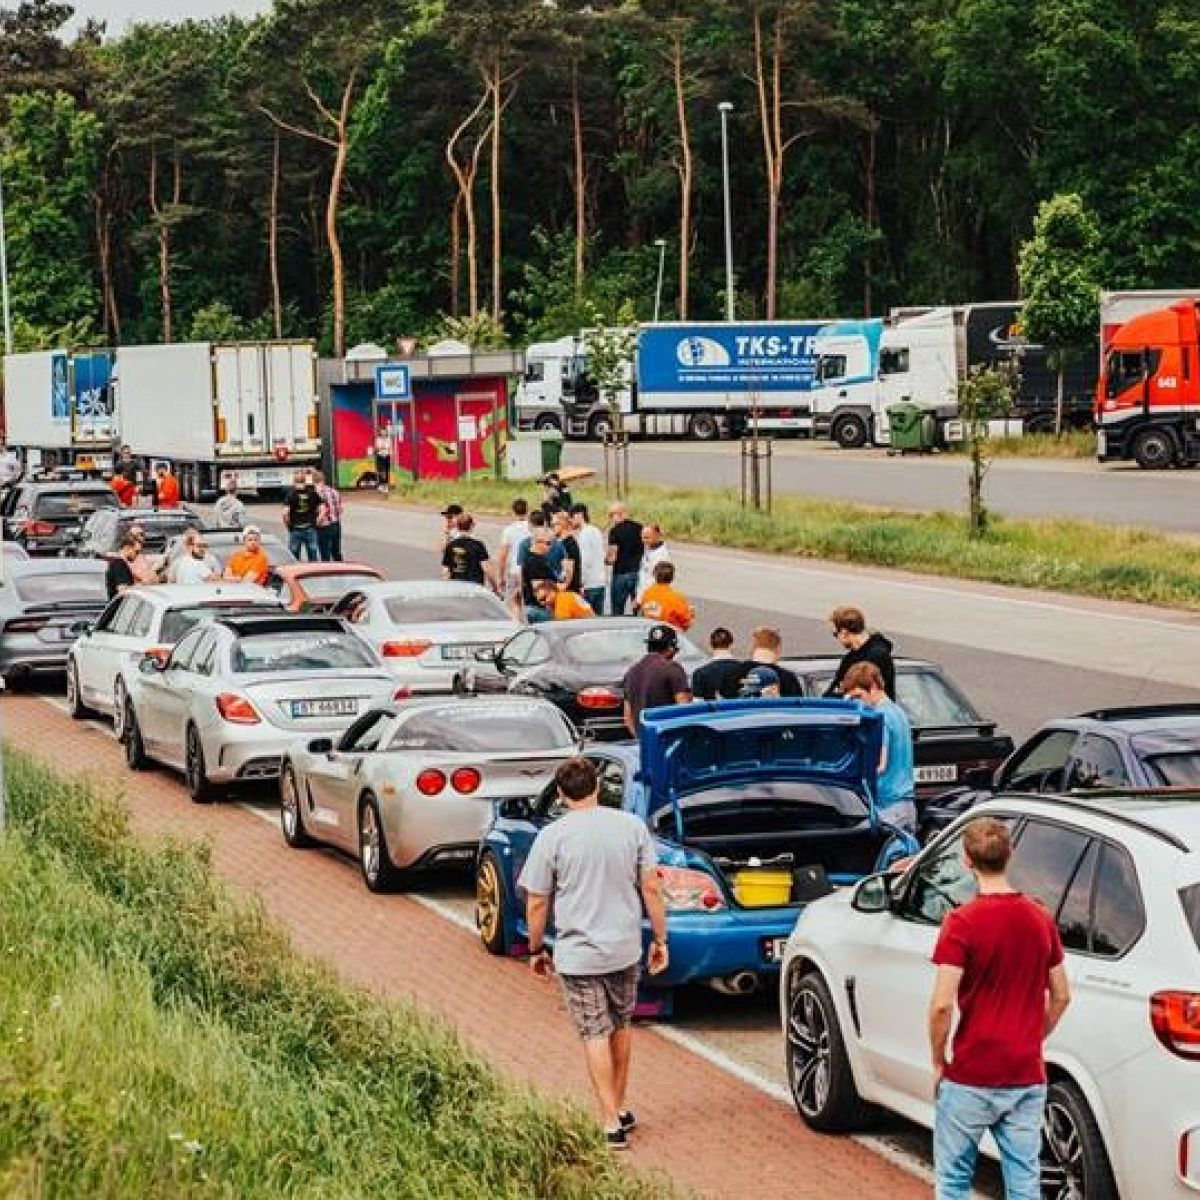 Germany police seize 120 sports cars during Eurorally 'race'